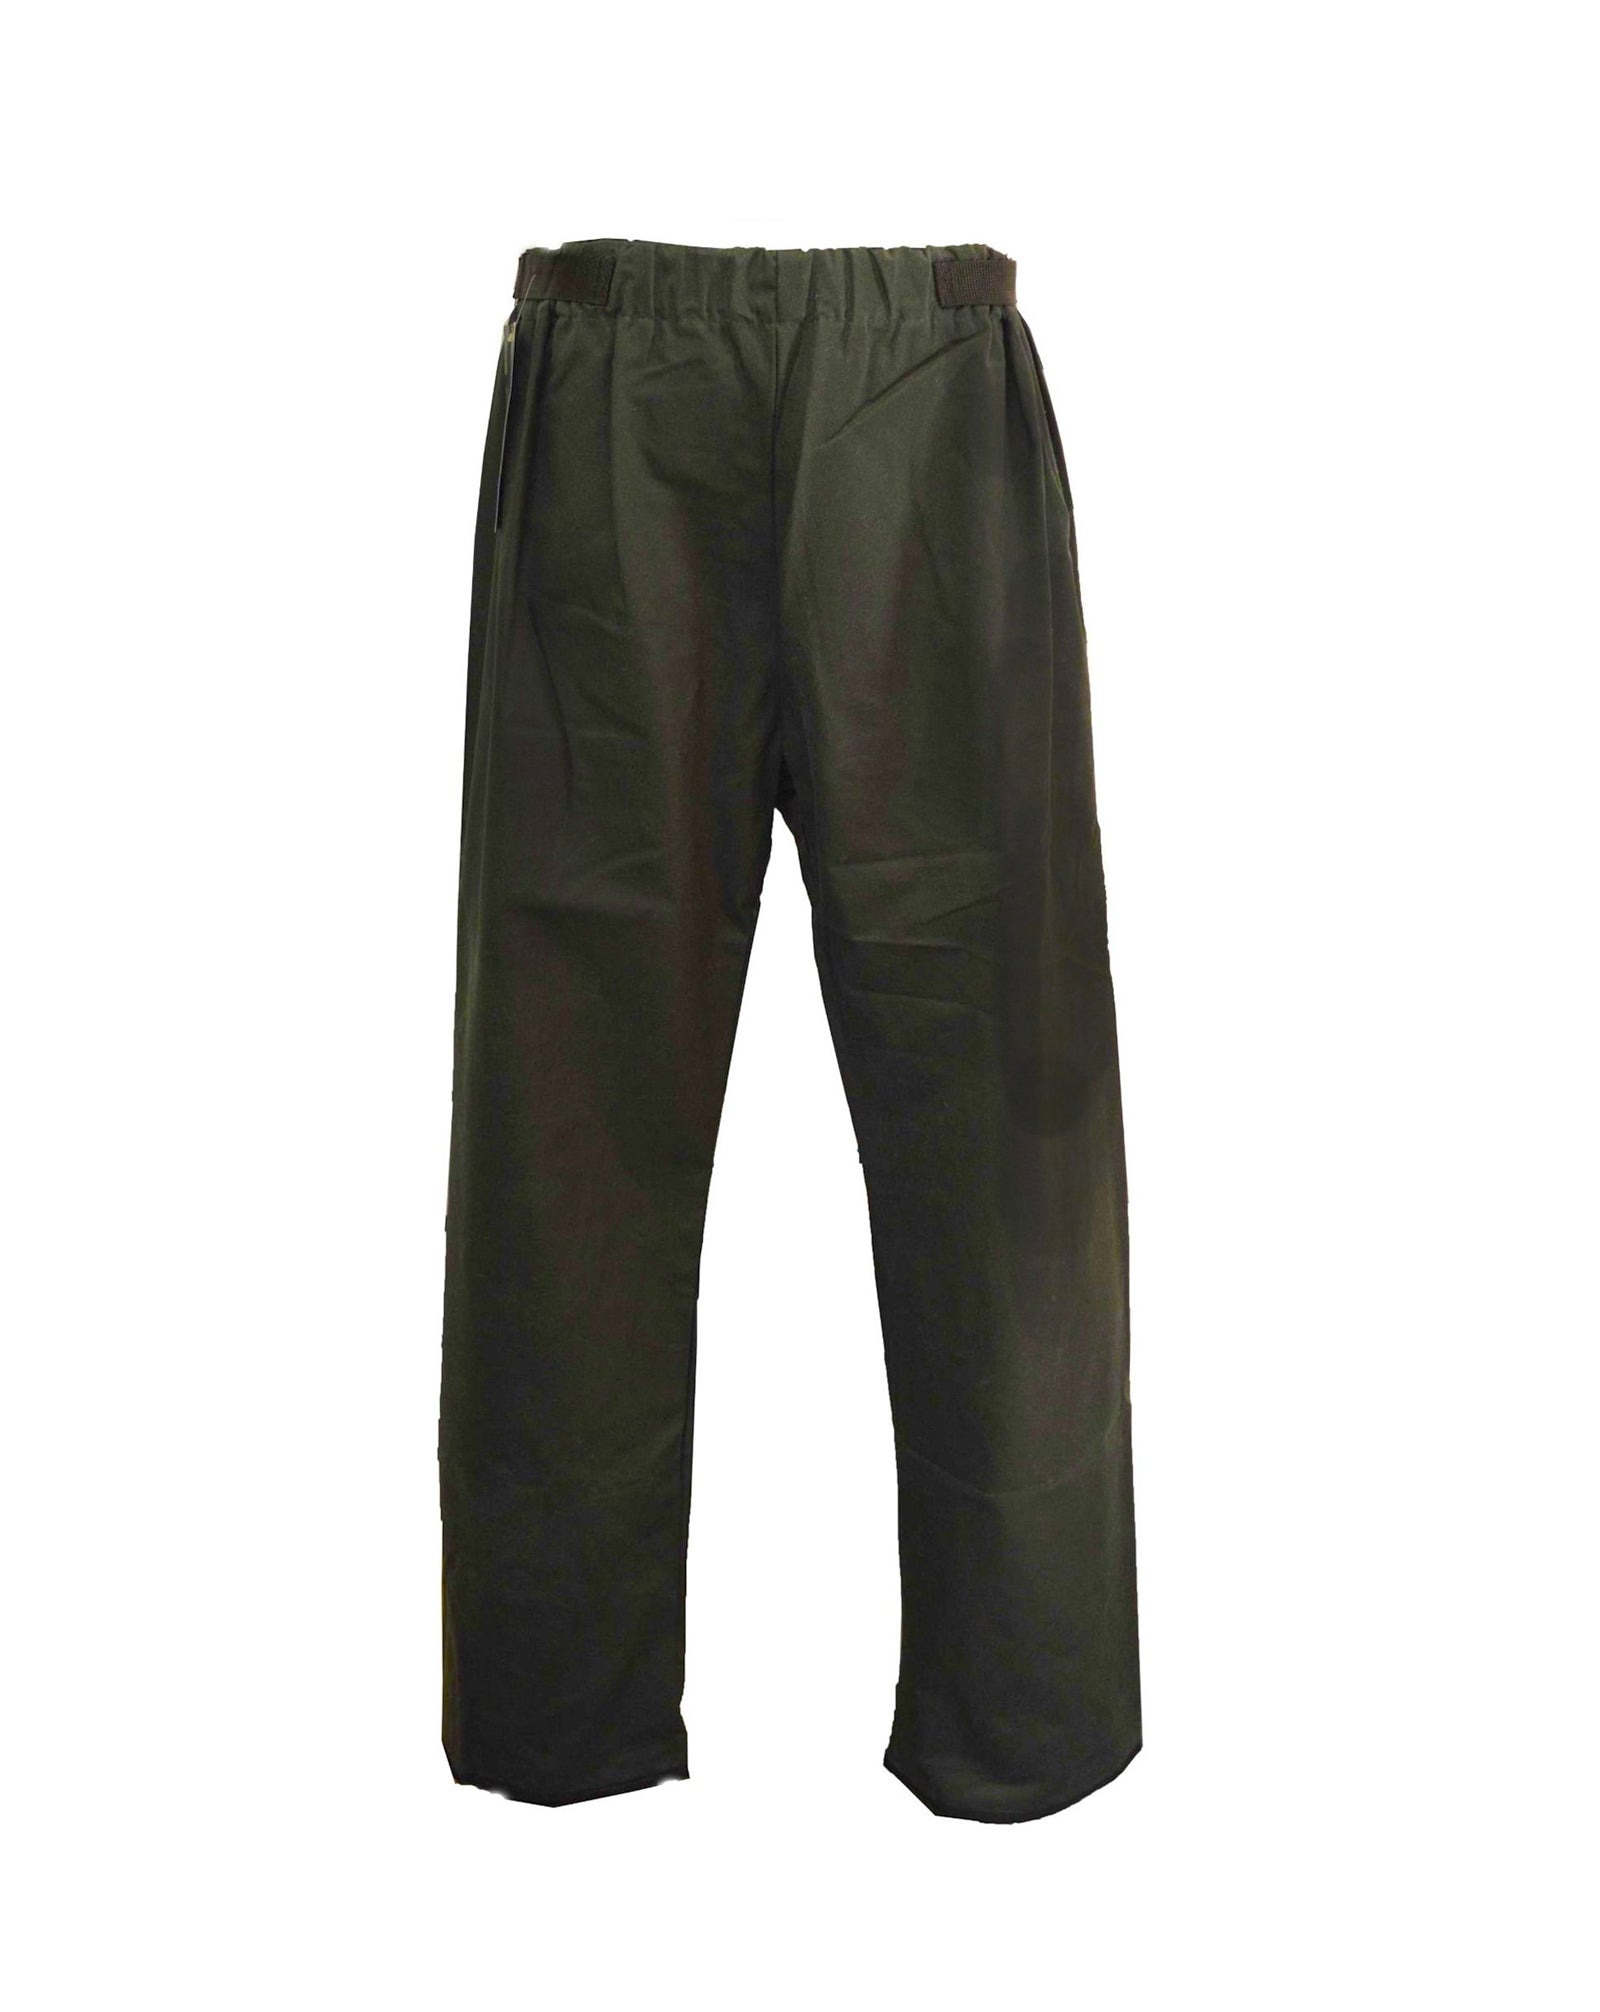 Regents View 100% Waxed Cotton Over Trouser - Olive